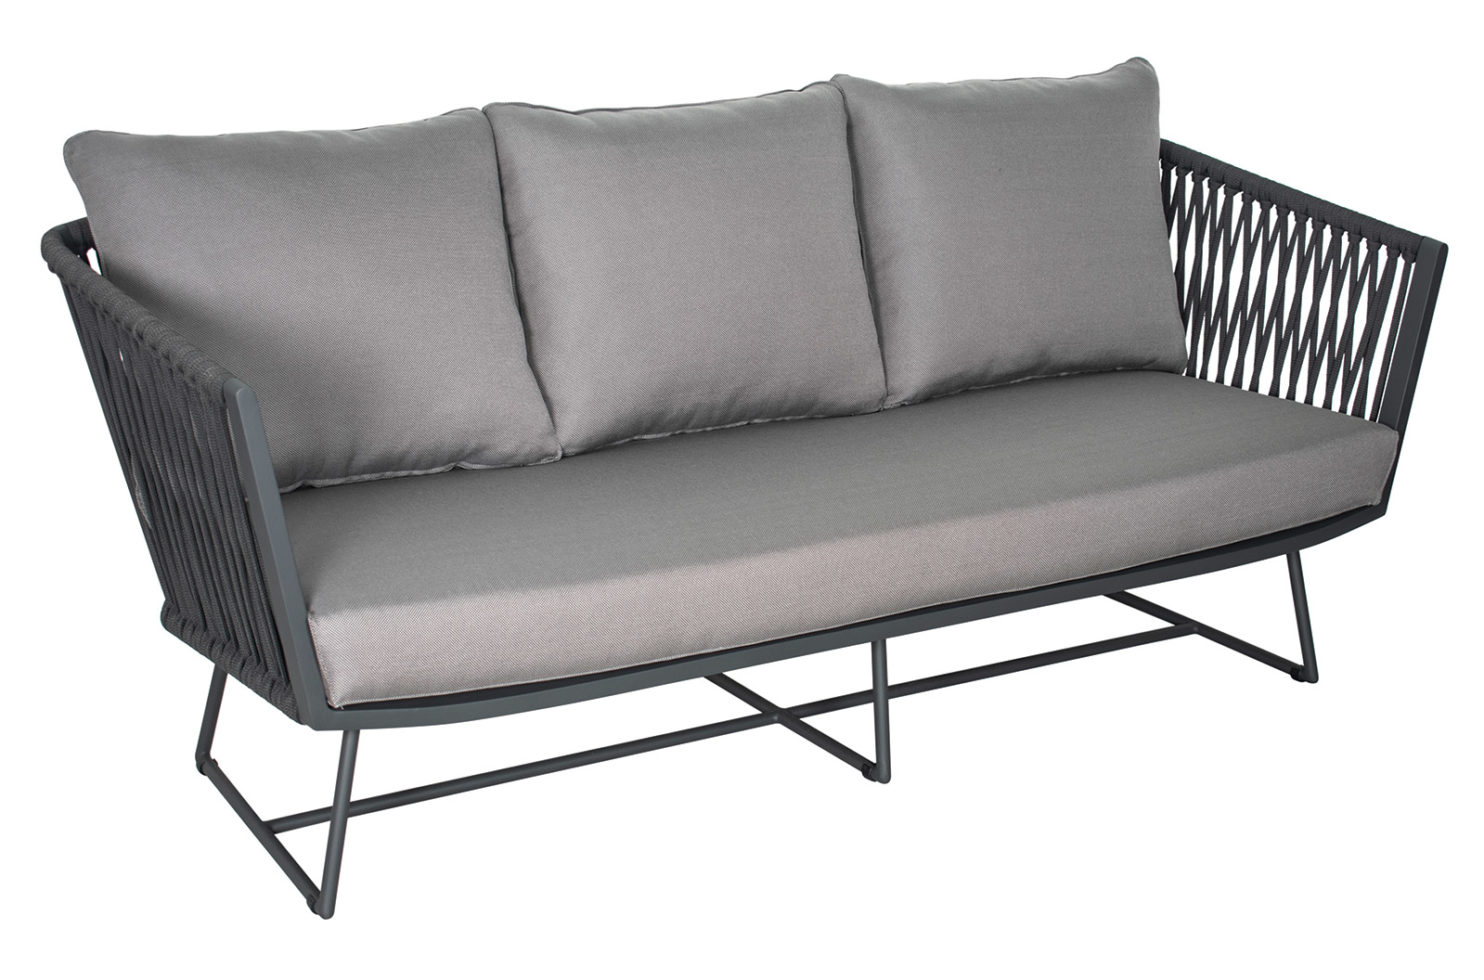 Archipelago orion sofa 620FT081P2DGP 1 3Q